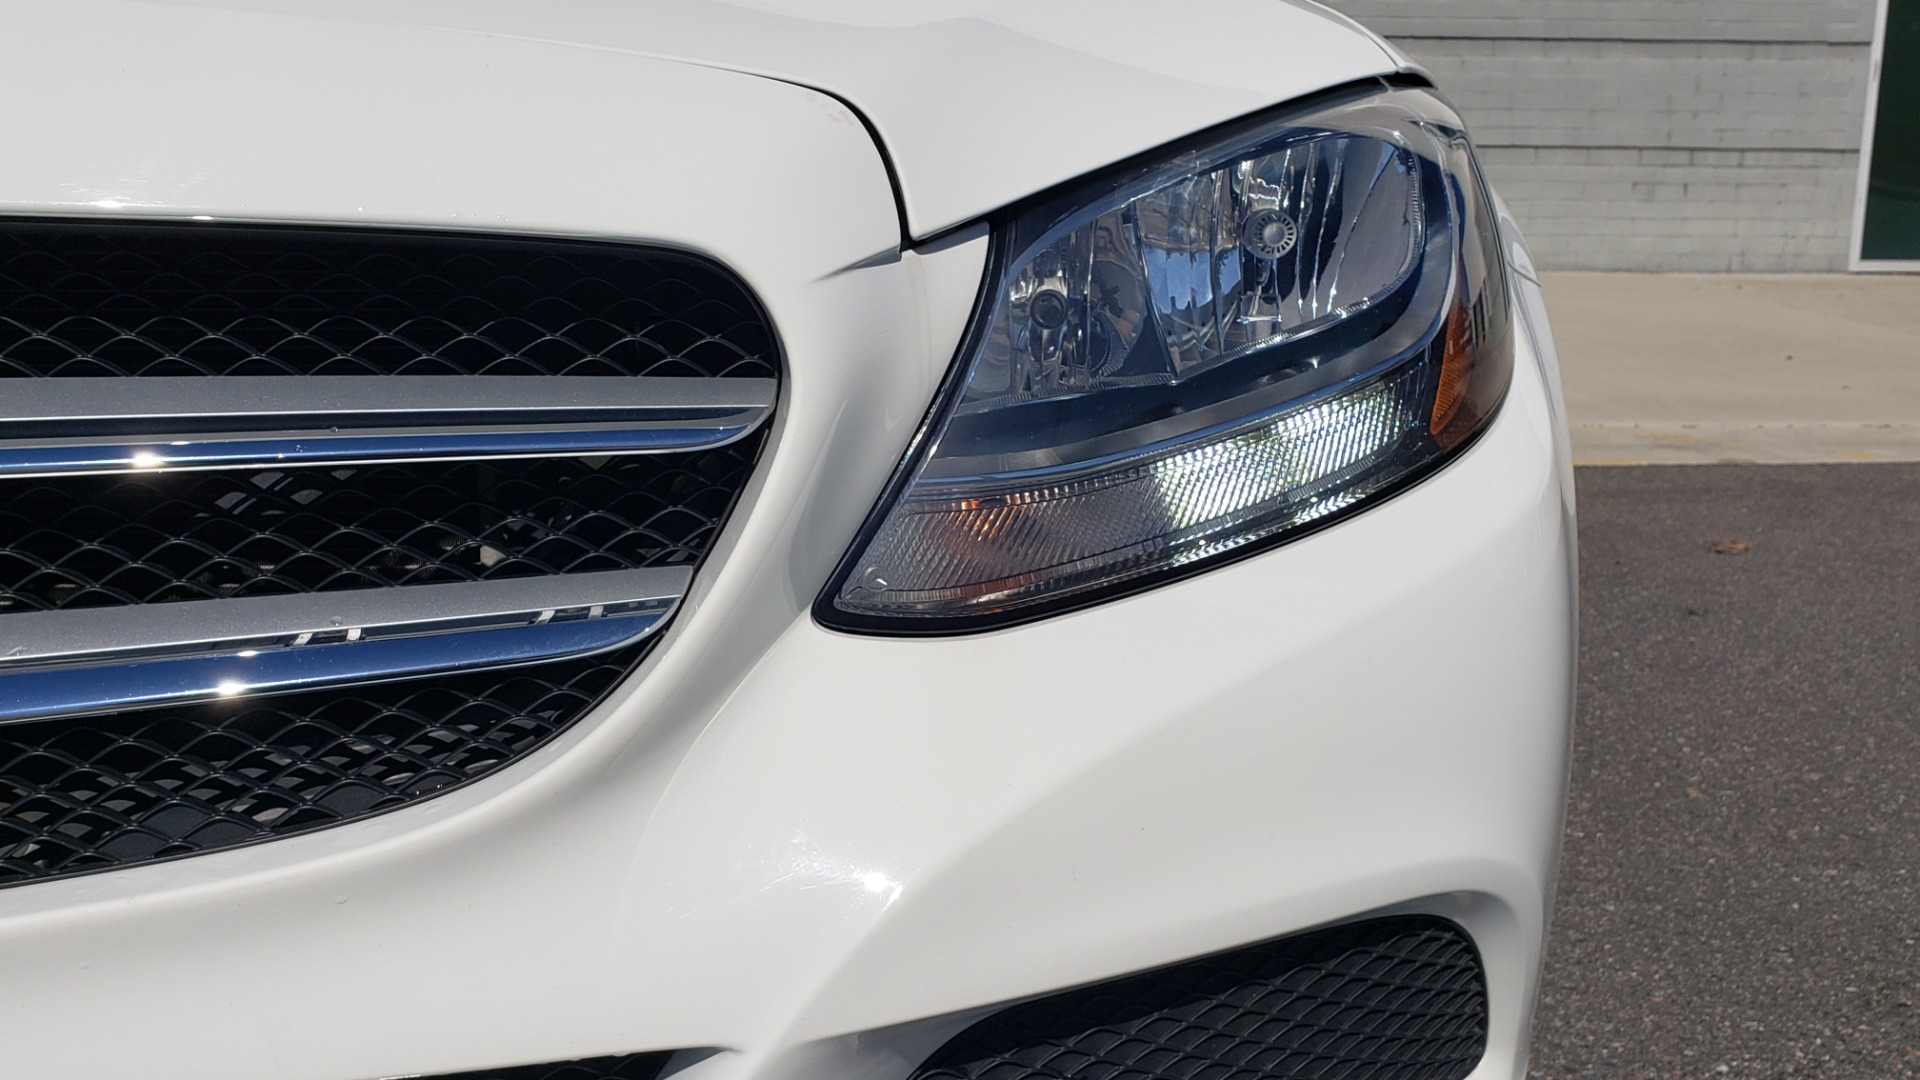 Used 2017 Mercedes-Benz C-CLASS C300 / 2.0L / 7-SPD AUTO / BSA / PANO-ROOF / REARVIEW for sale Sold at Formula Imports in Charlotte NC 28227 19